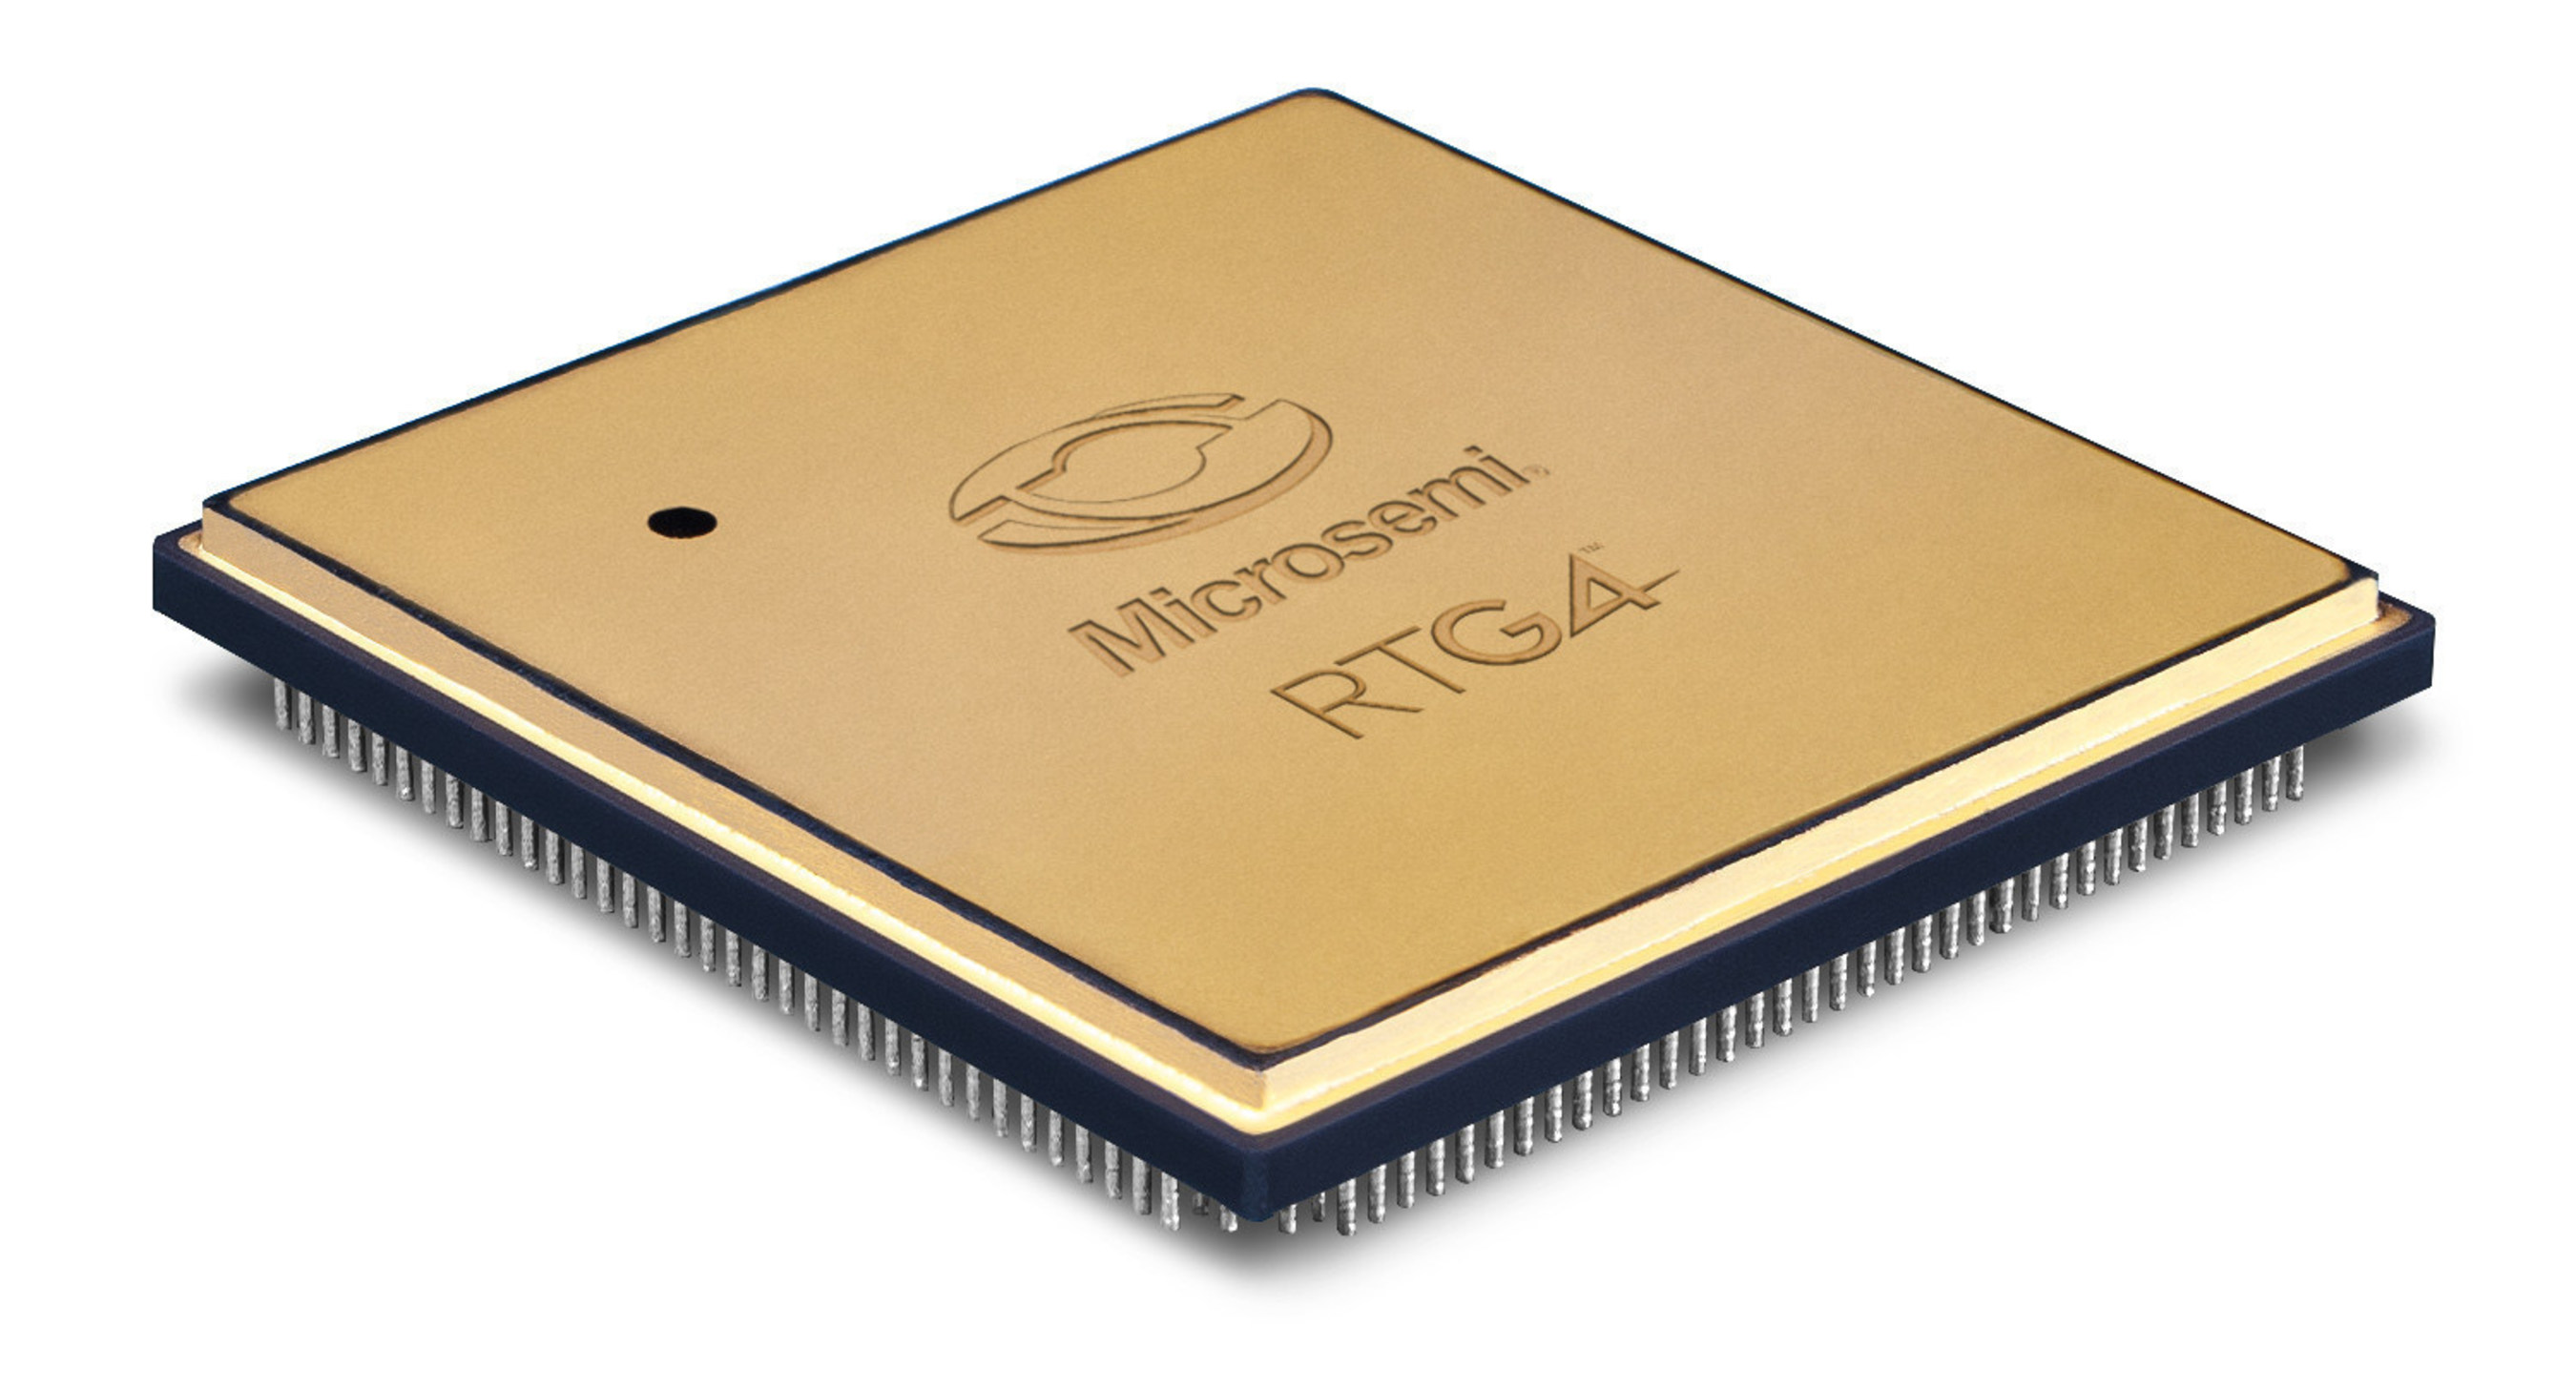 Microsemi Announces RTG4 Radiation-tolerant FPGAs For High-speed Signal Processing Applications